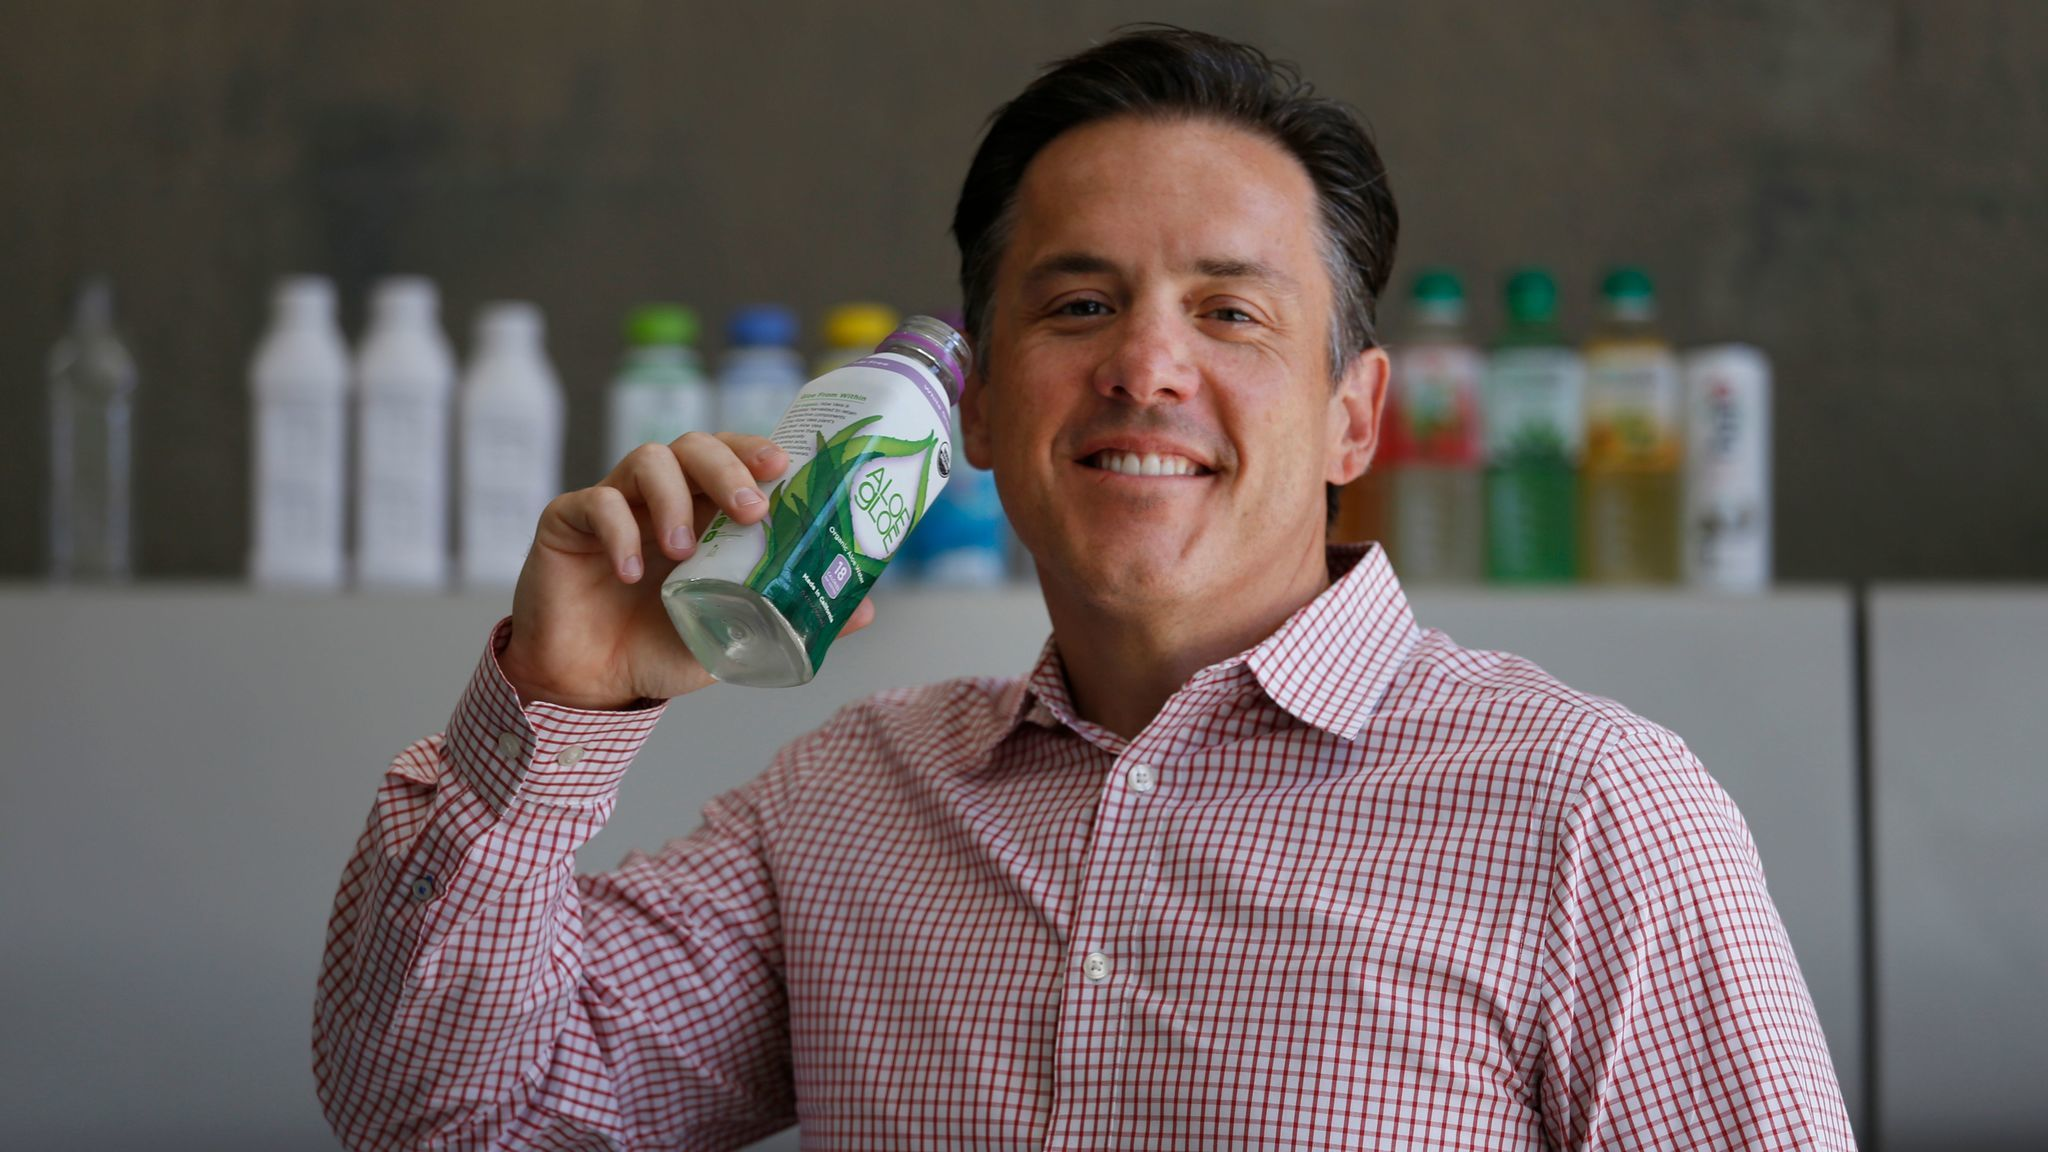 Dino Sarti's own journey to health inspired the creation of Aloe Gloe.